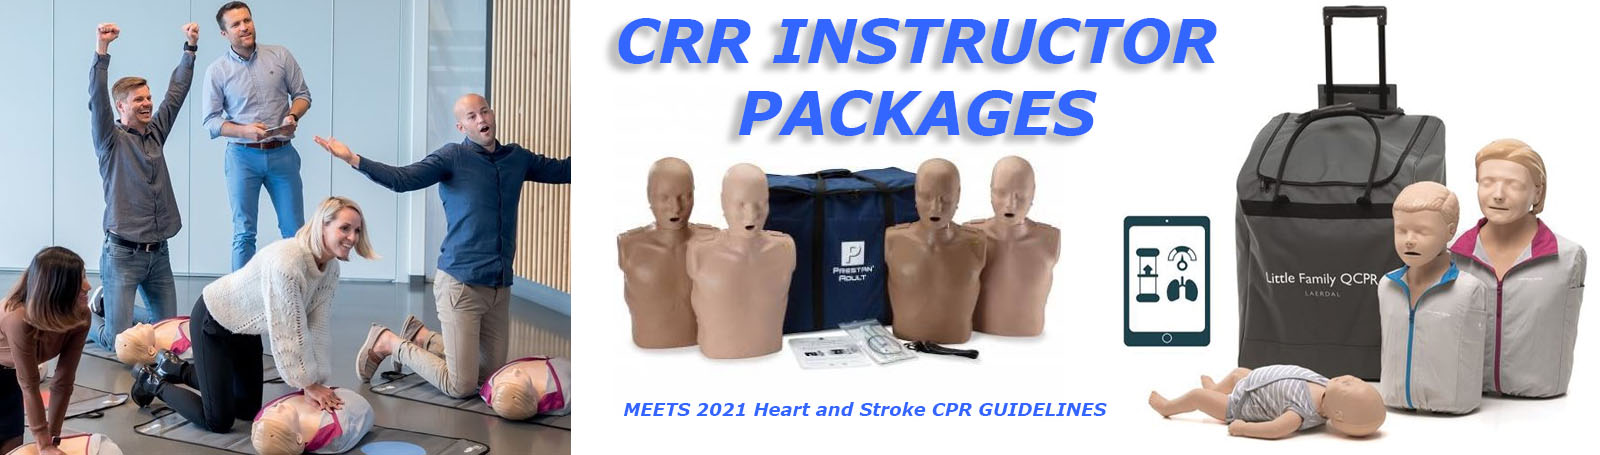 INSTRUCTOR PACKAGES